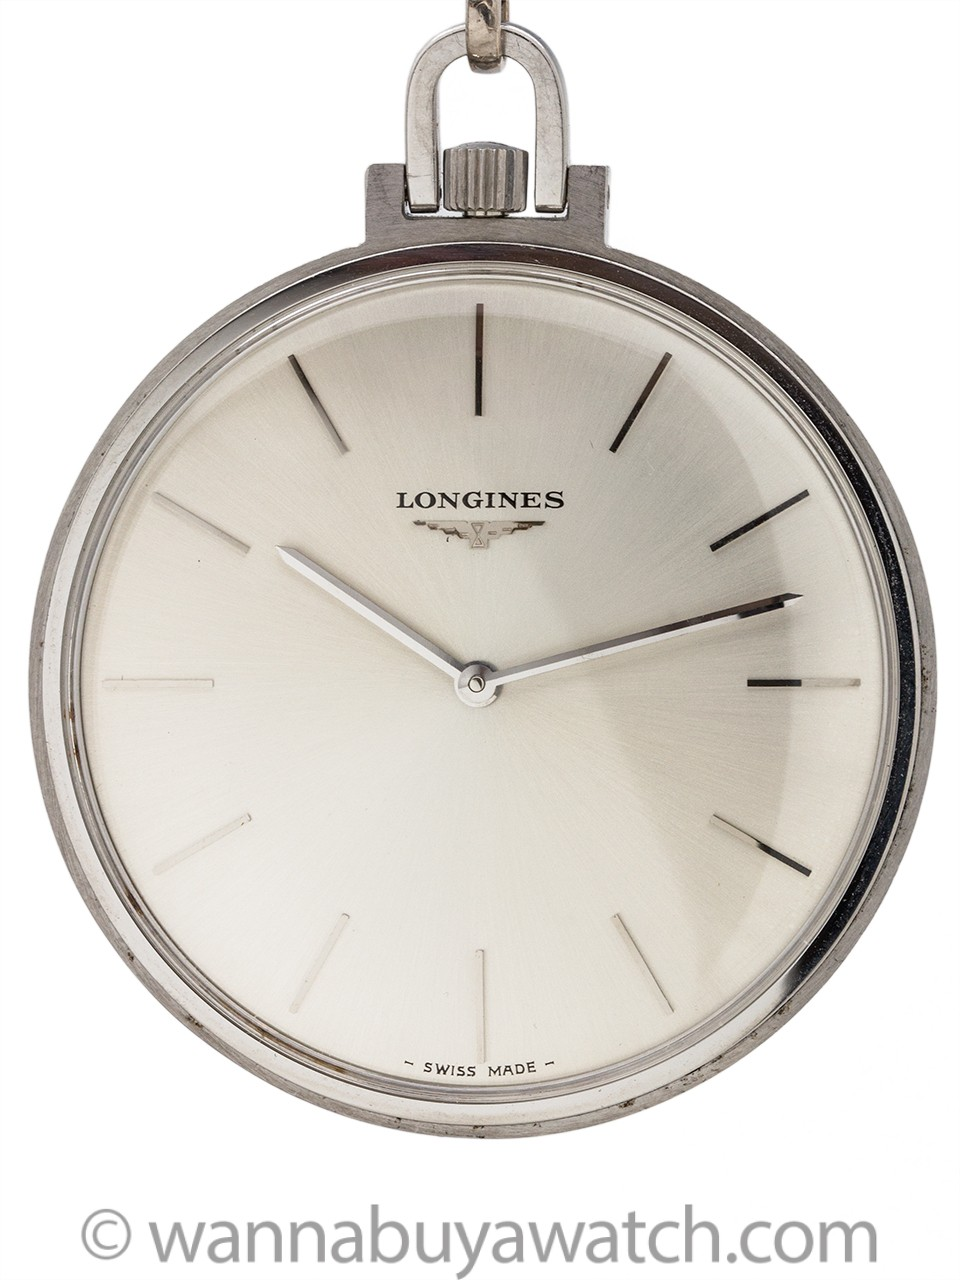 Longines Dress Pocket Watch circa 1960's